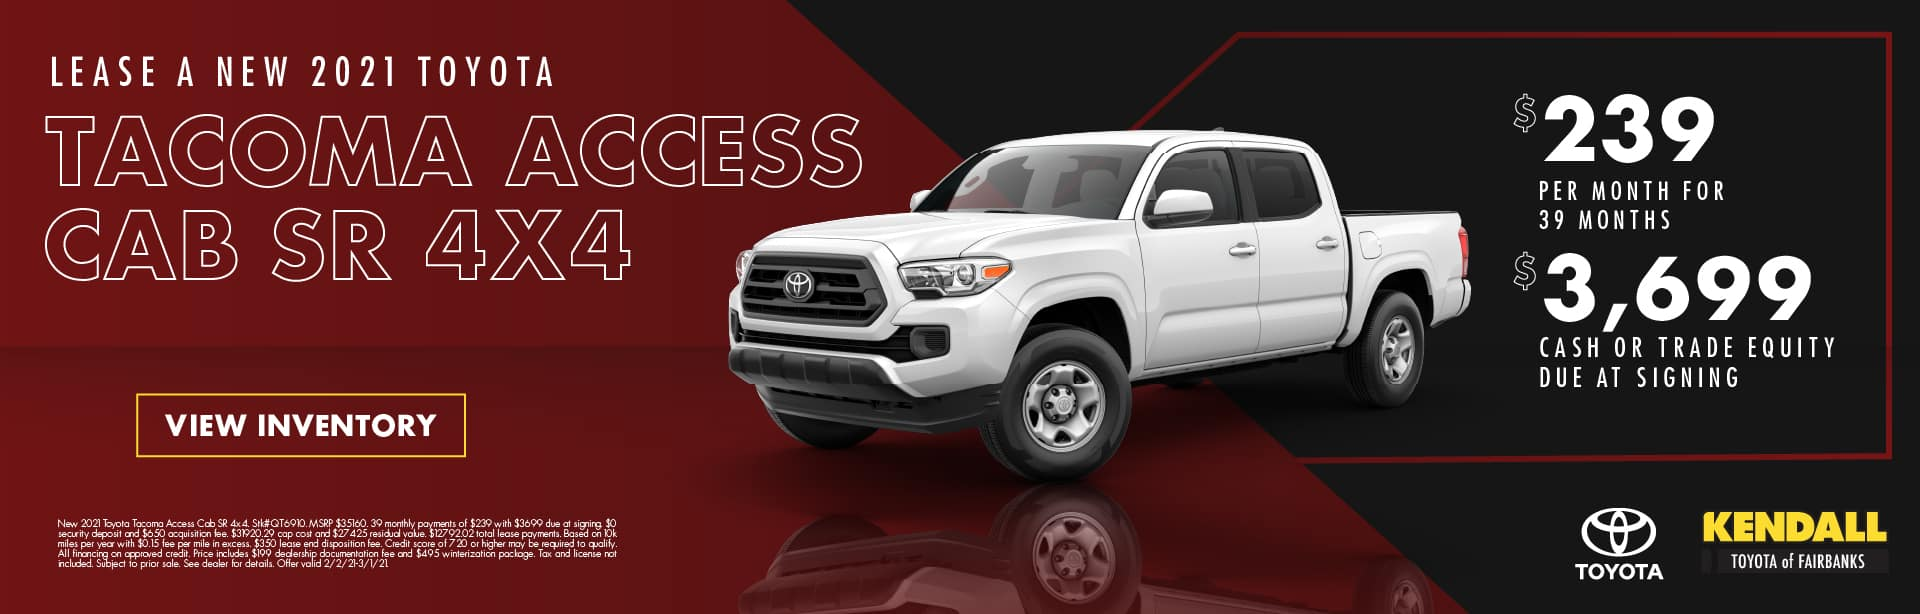 Toyota Dealership In Fairbanks Used Cars Fairbanks Kendall Toyota Of Fairbanks Serving North Pole And Delta Junction